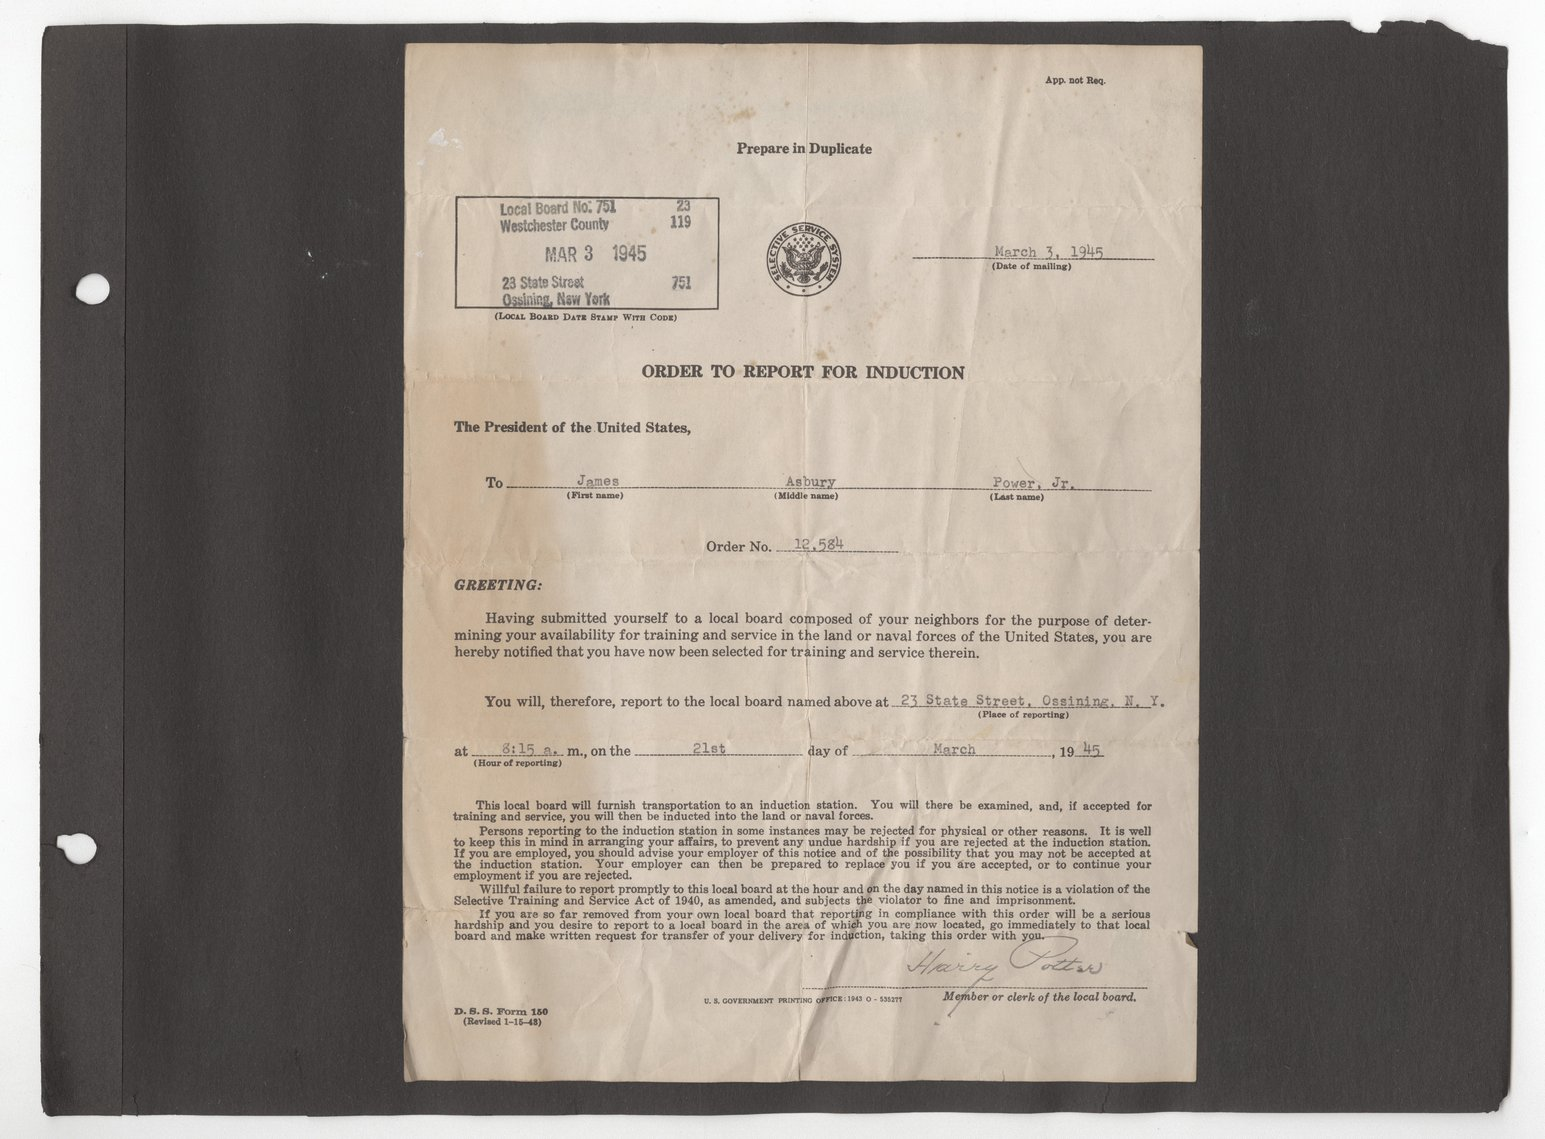 James Asbury Power, Jr.'s World War II photograph album - Order to Report for Induction letter